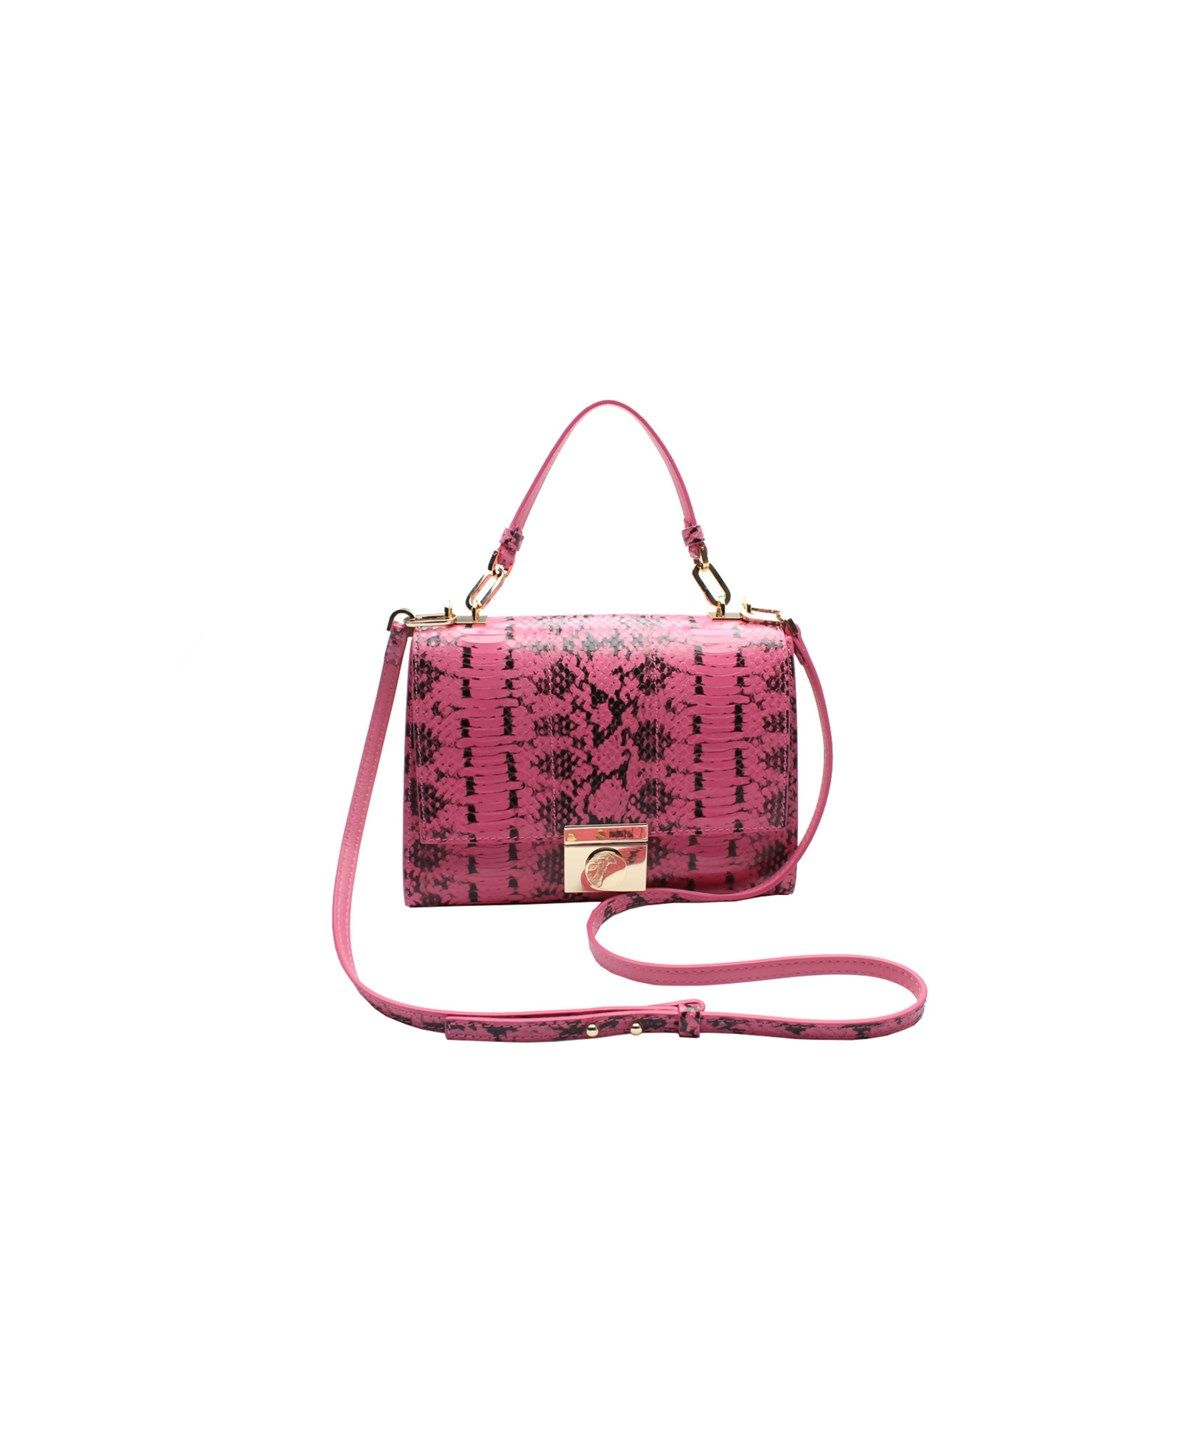 VERSACE VERSACE COLLECTION REPTILE PATTERN LEATHER SMALL SHOULDER HANDBAG .   versace  bags  shoulder bags  hand bags  leather   6c75800f3f7e3